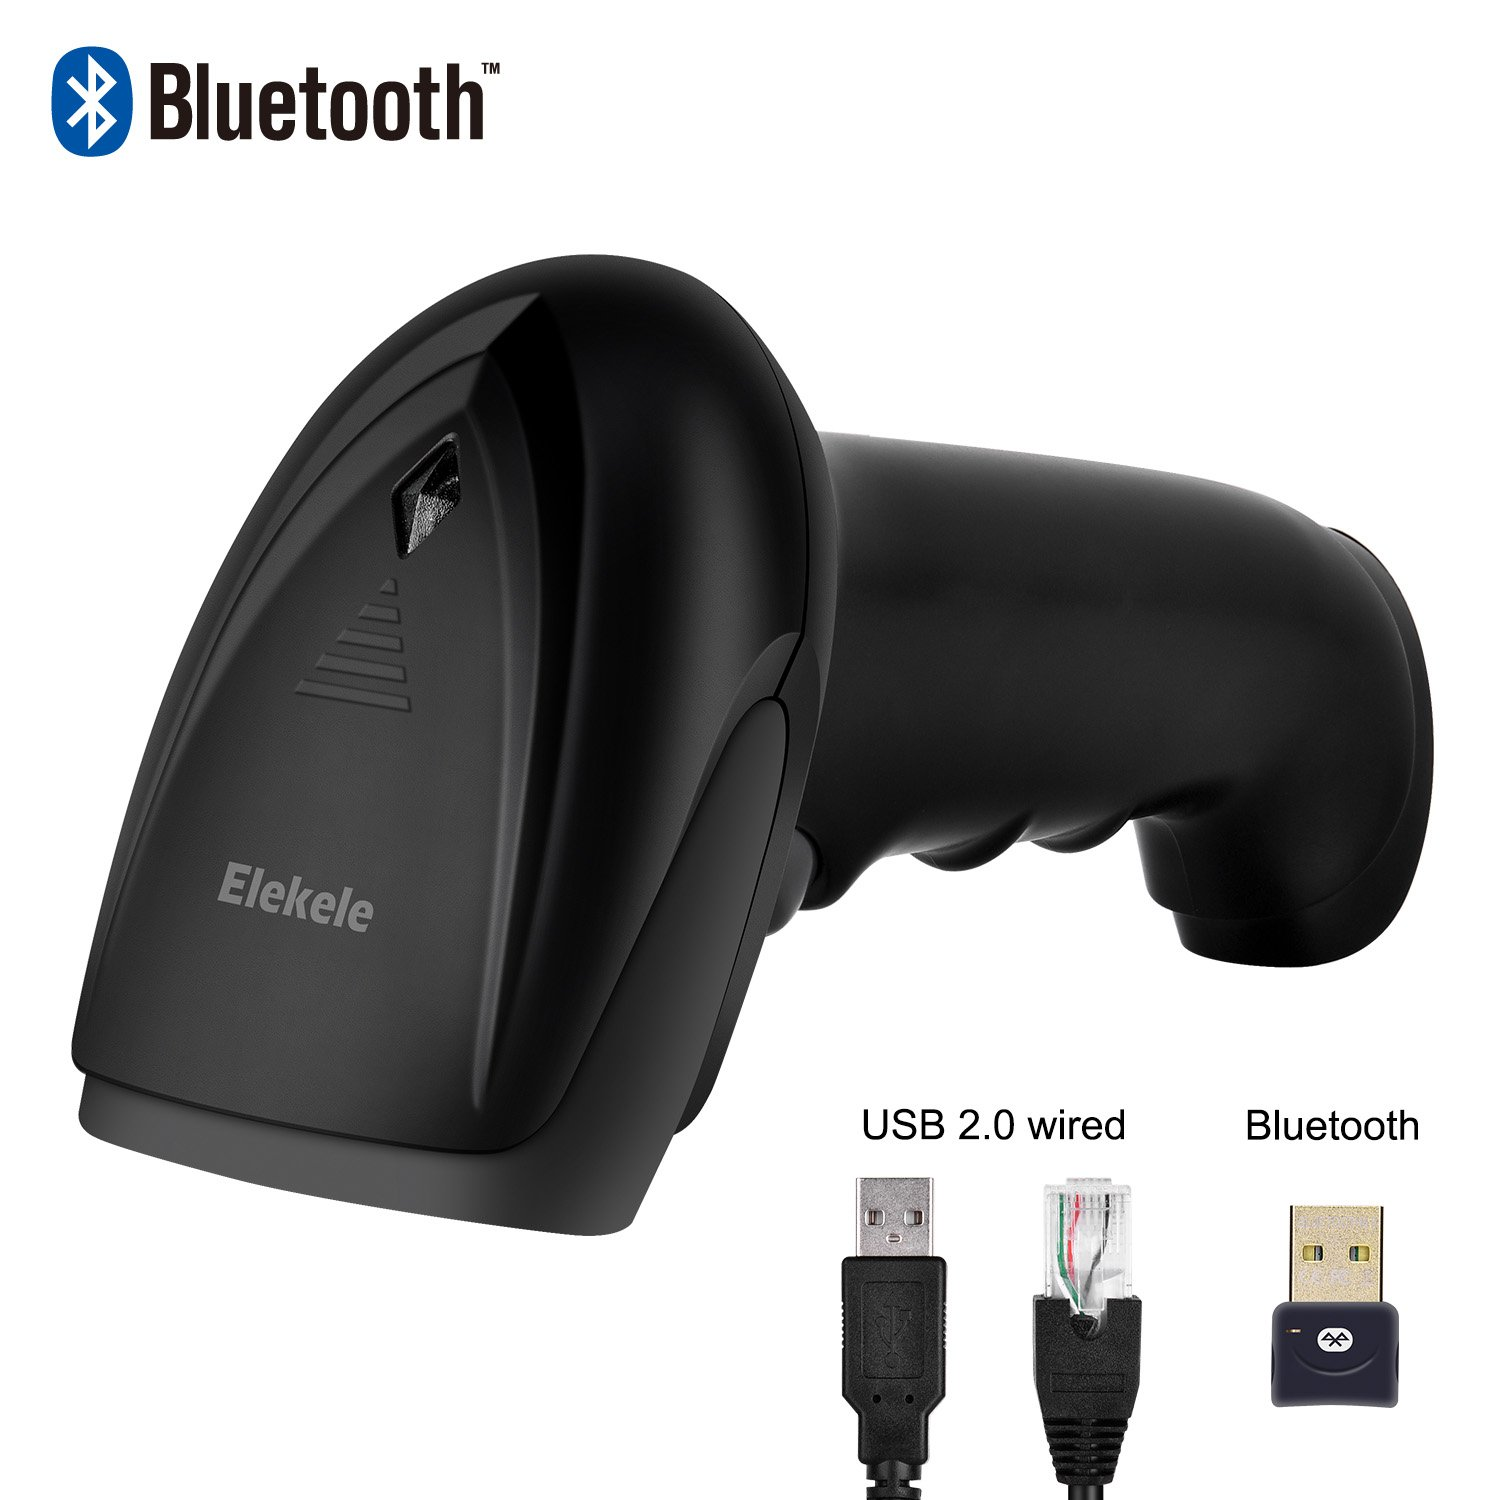 USB 2.0 Wired + Wireles Bluetooth Barcode Scanner, Elekle 1D Handheld Inventory Bar Code Reader with Automatic Continuous Scan for Computer ipad iphone Android (Bluetooth)